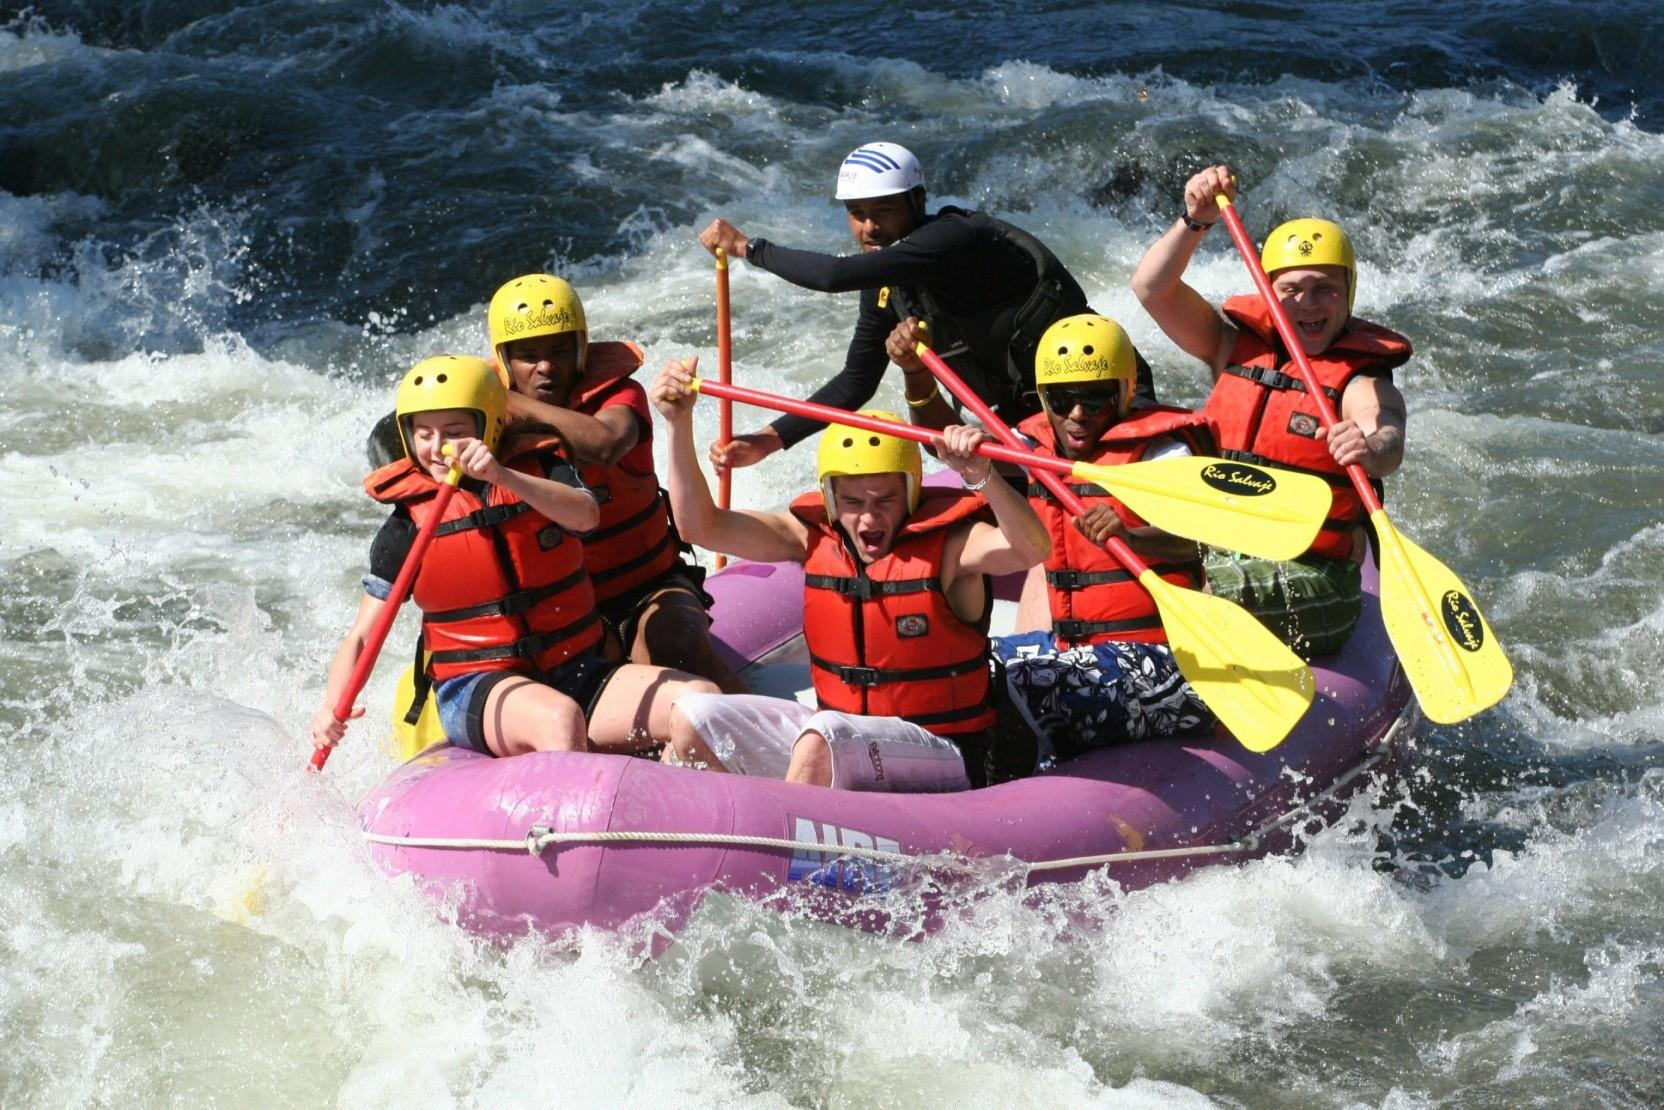 Sports White Water Rafting Boat Sport Raft Outdoor Water People HD